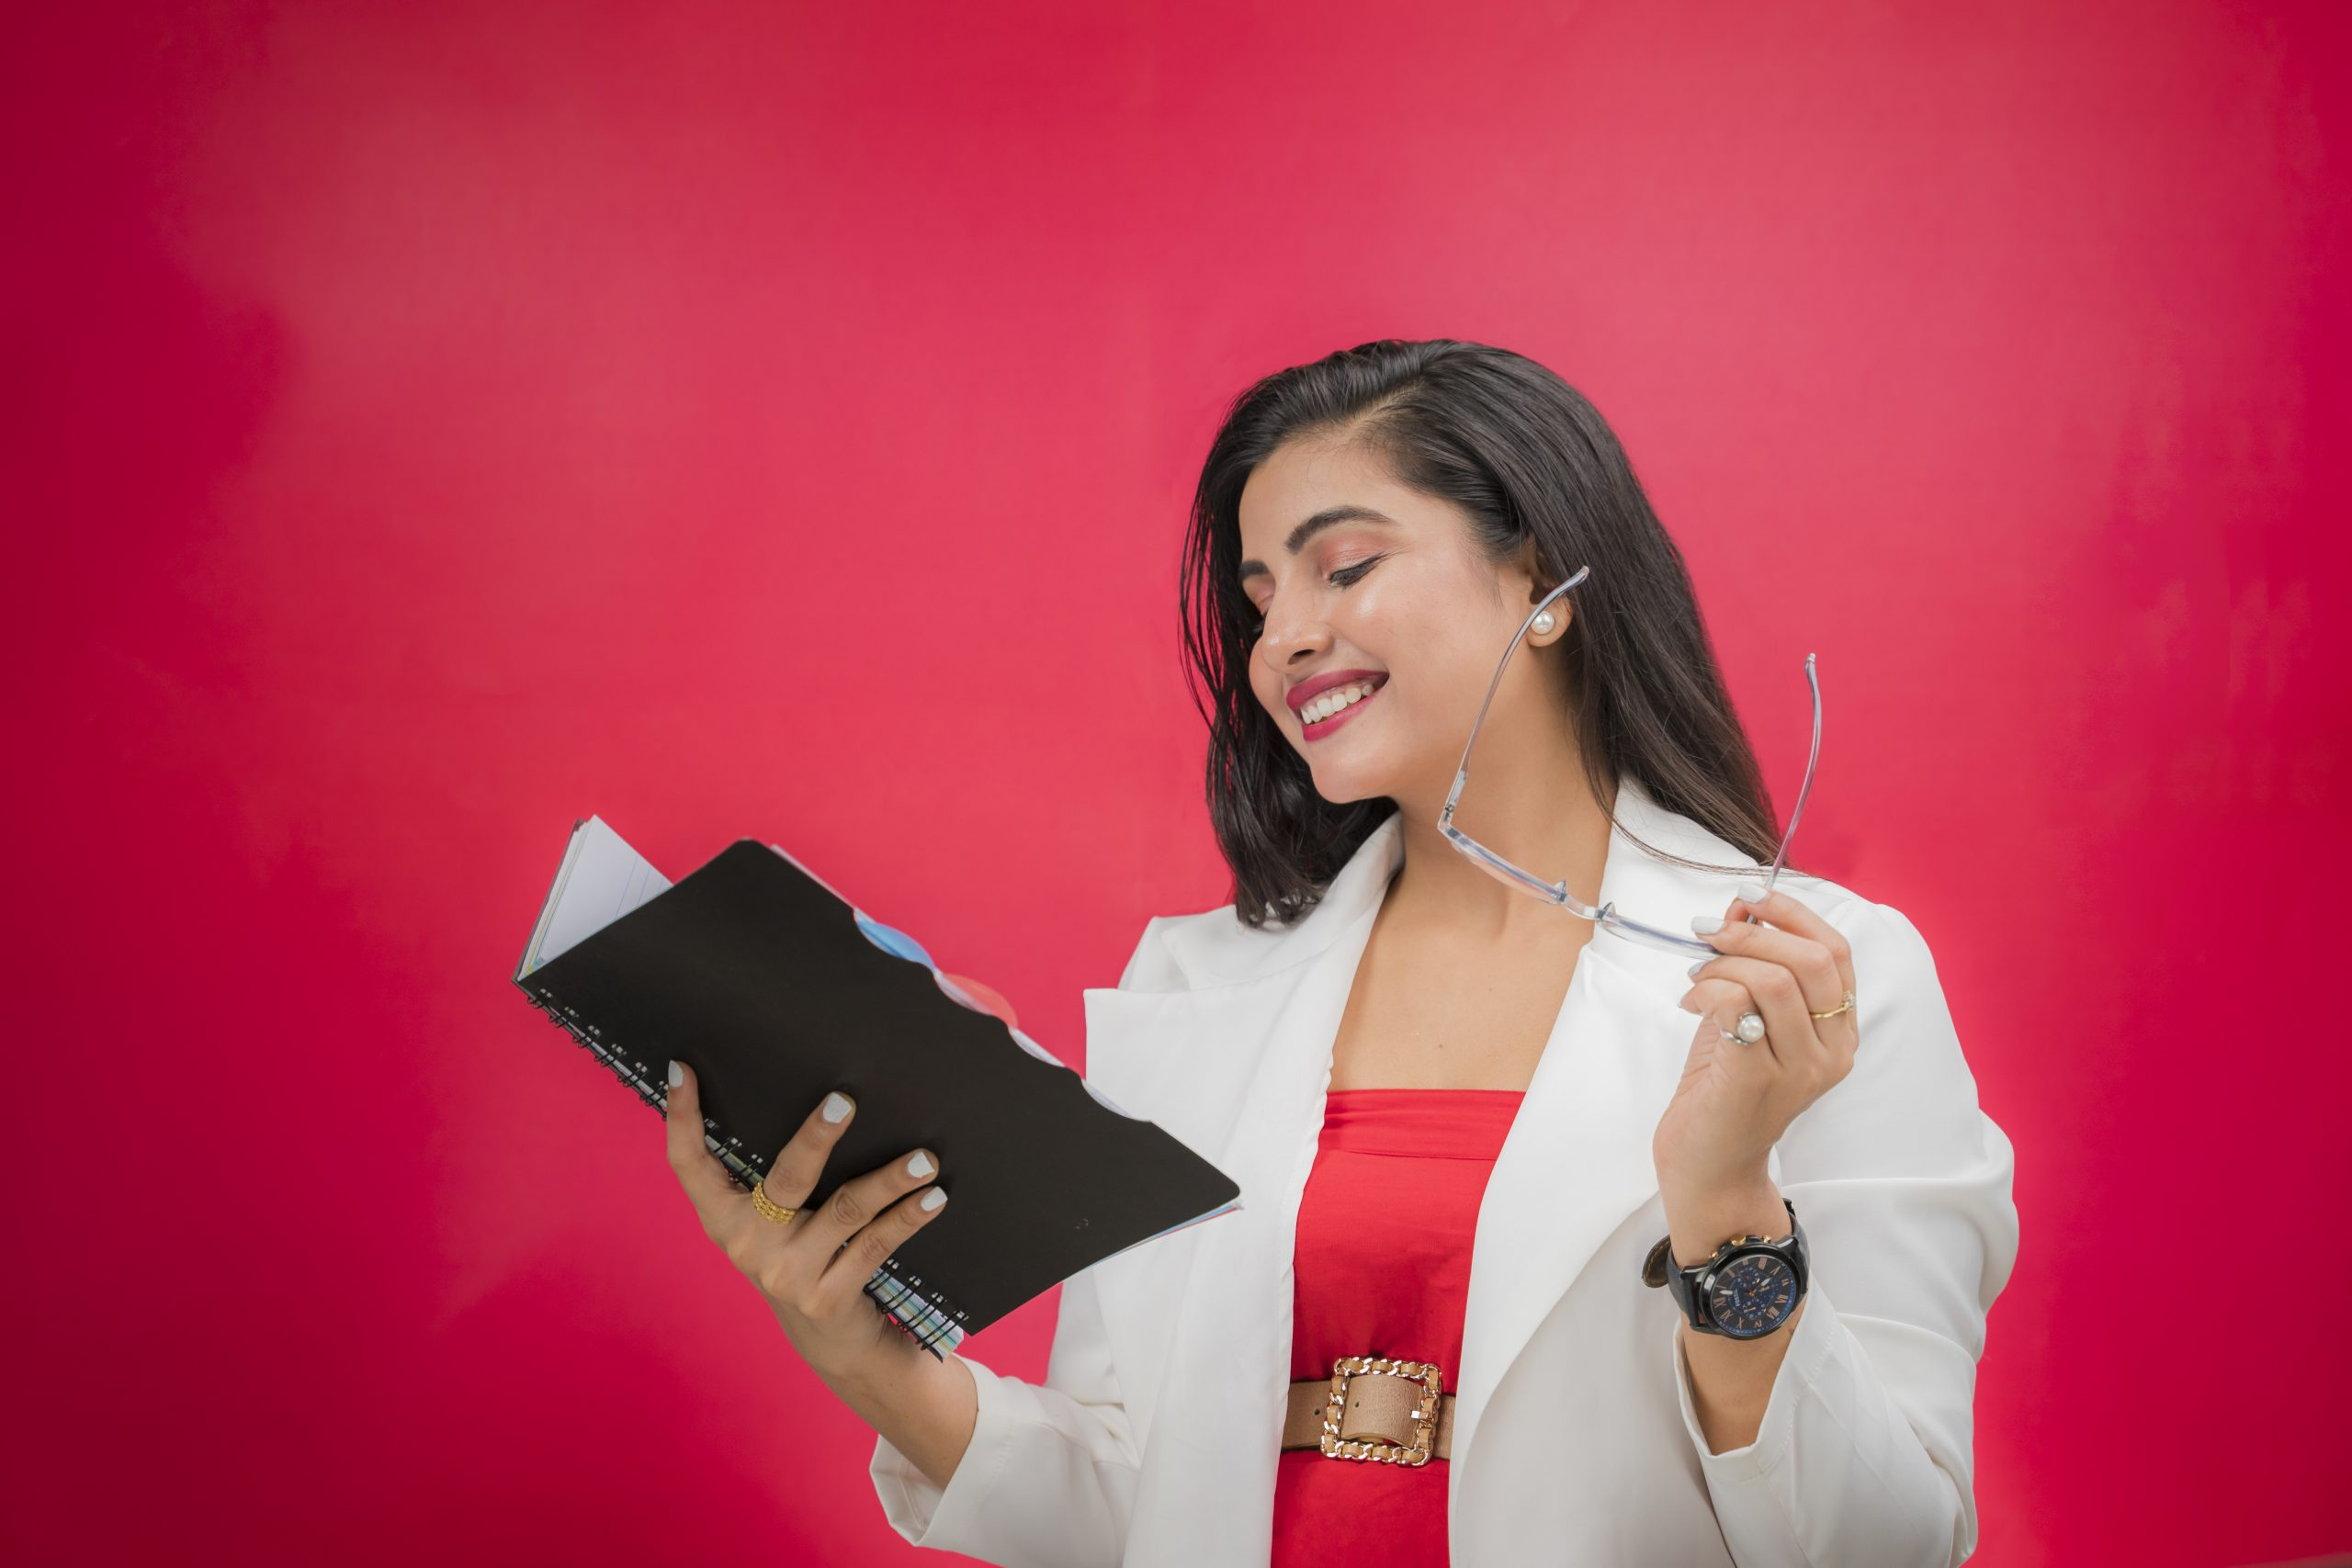 Happy working woman reading book